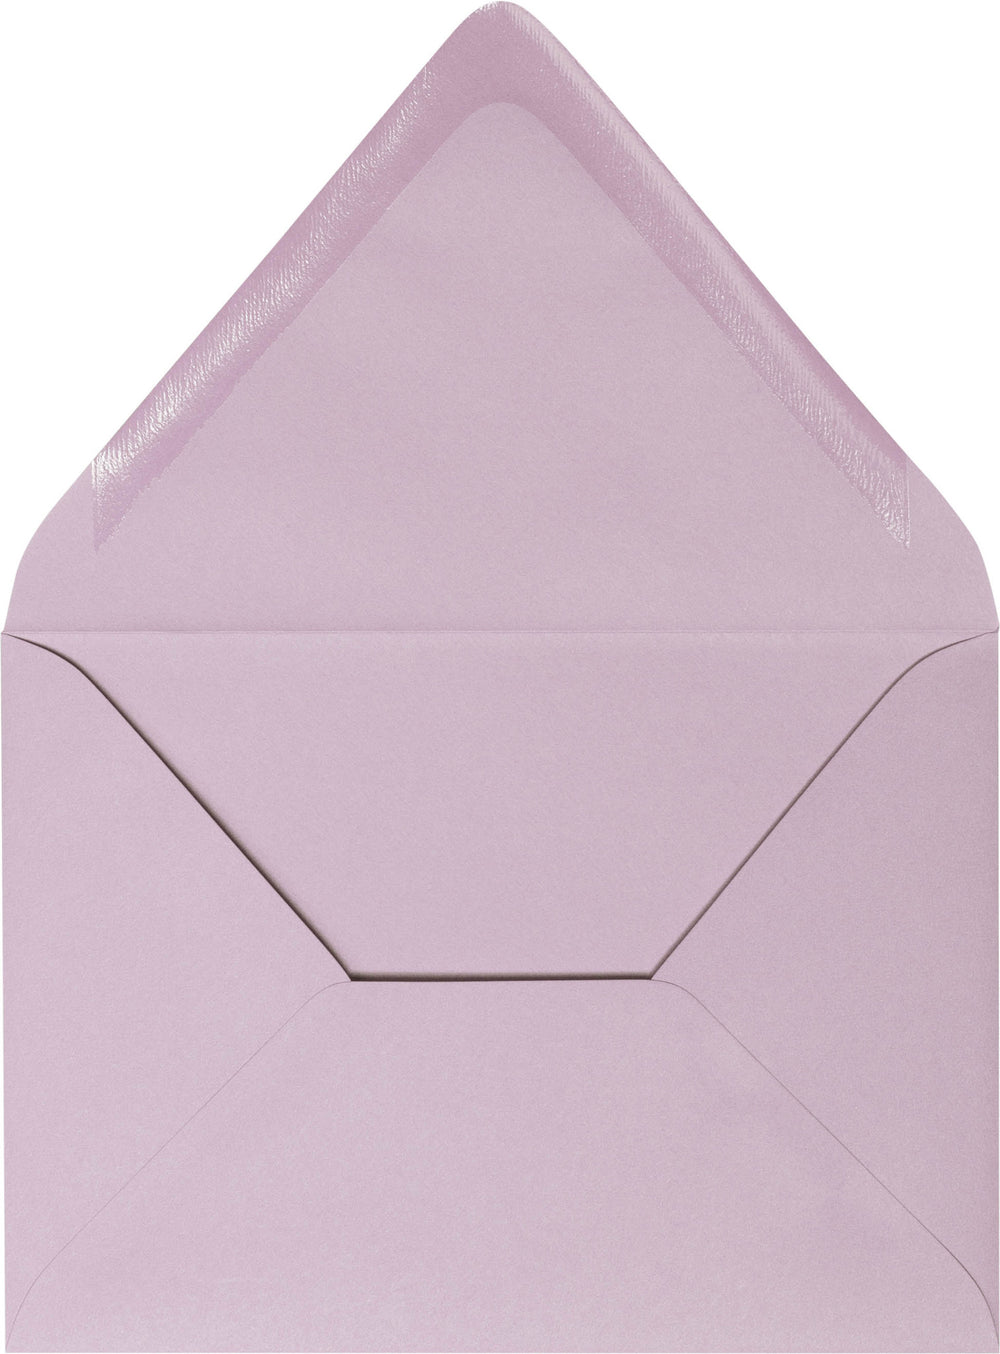 "A-2 Wisteria Purple Solid Euro Flap Envelopes (4 3/8"" x 5 3/4"")"